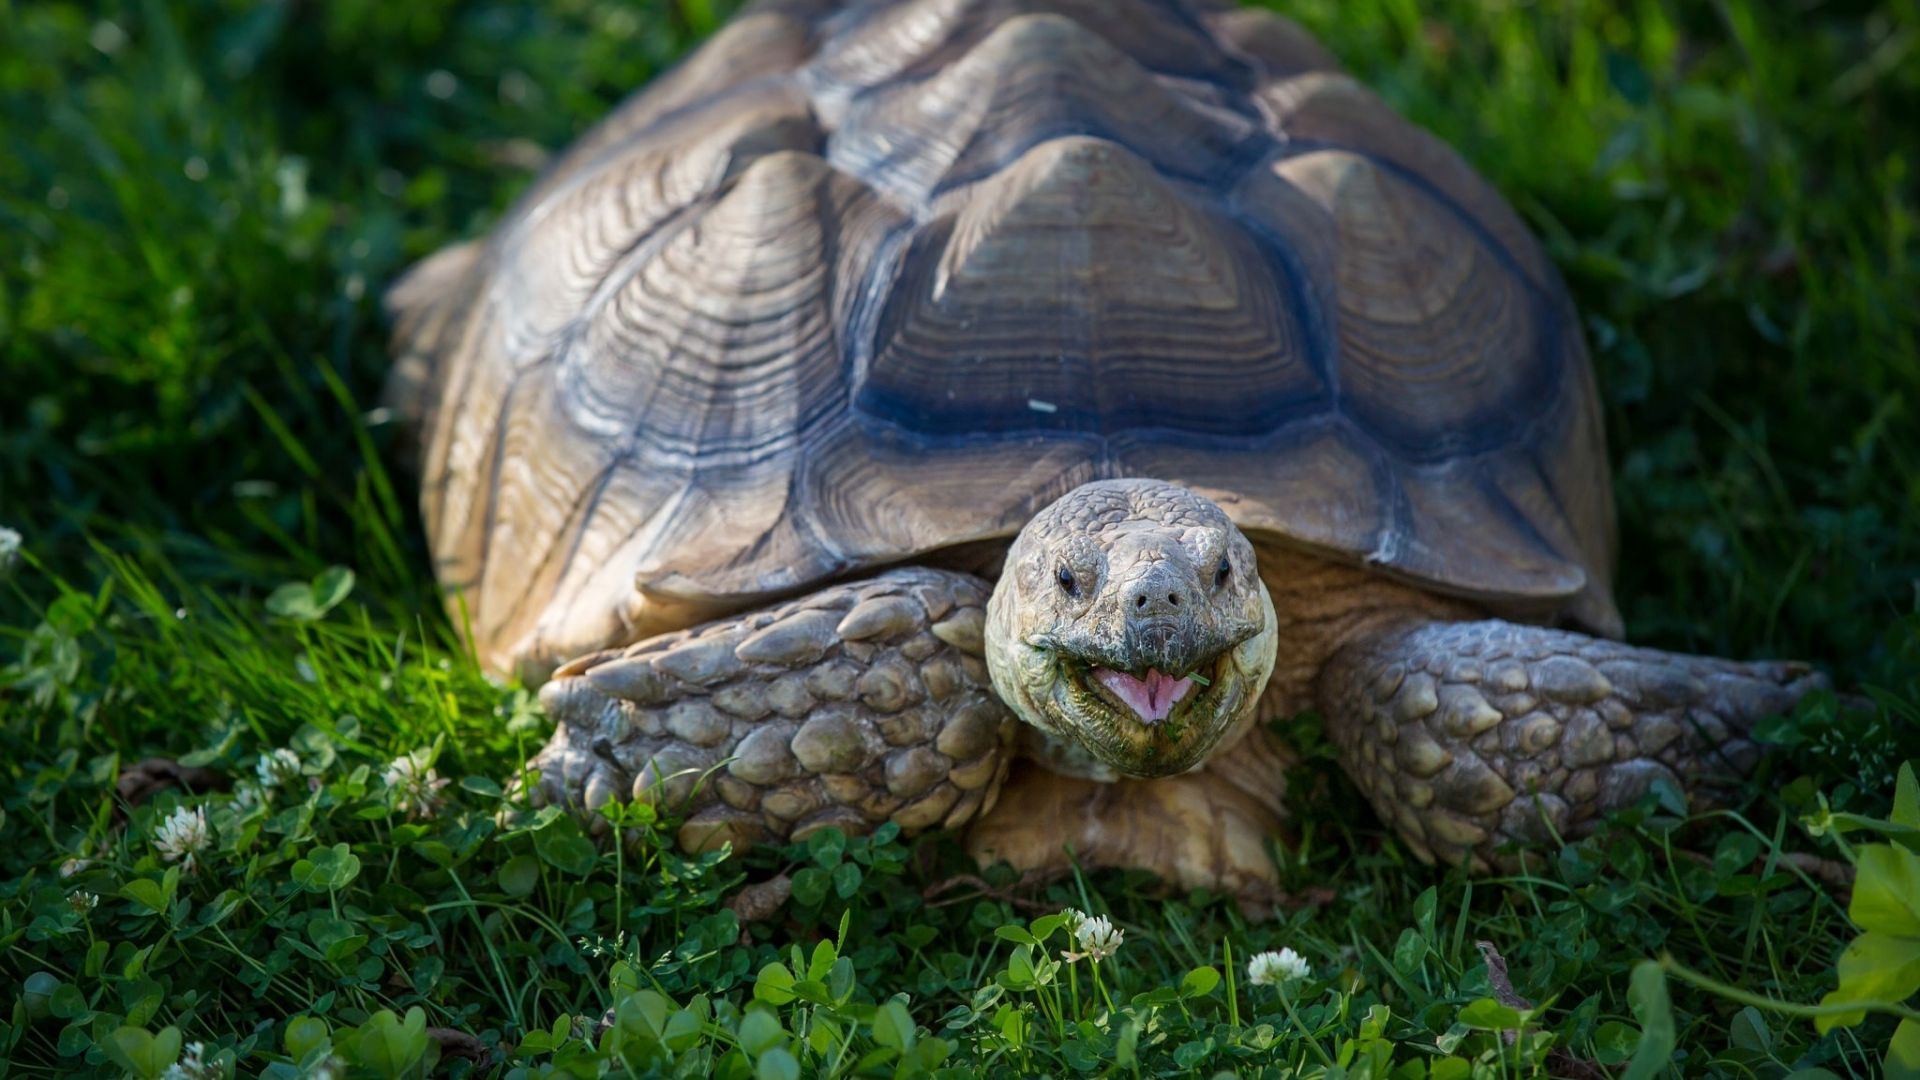 turtle images free download